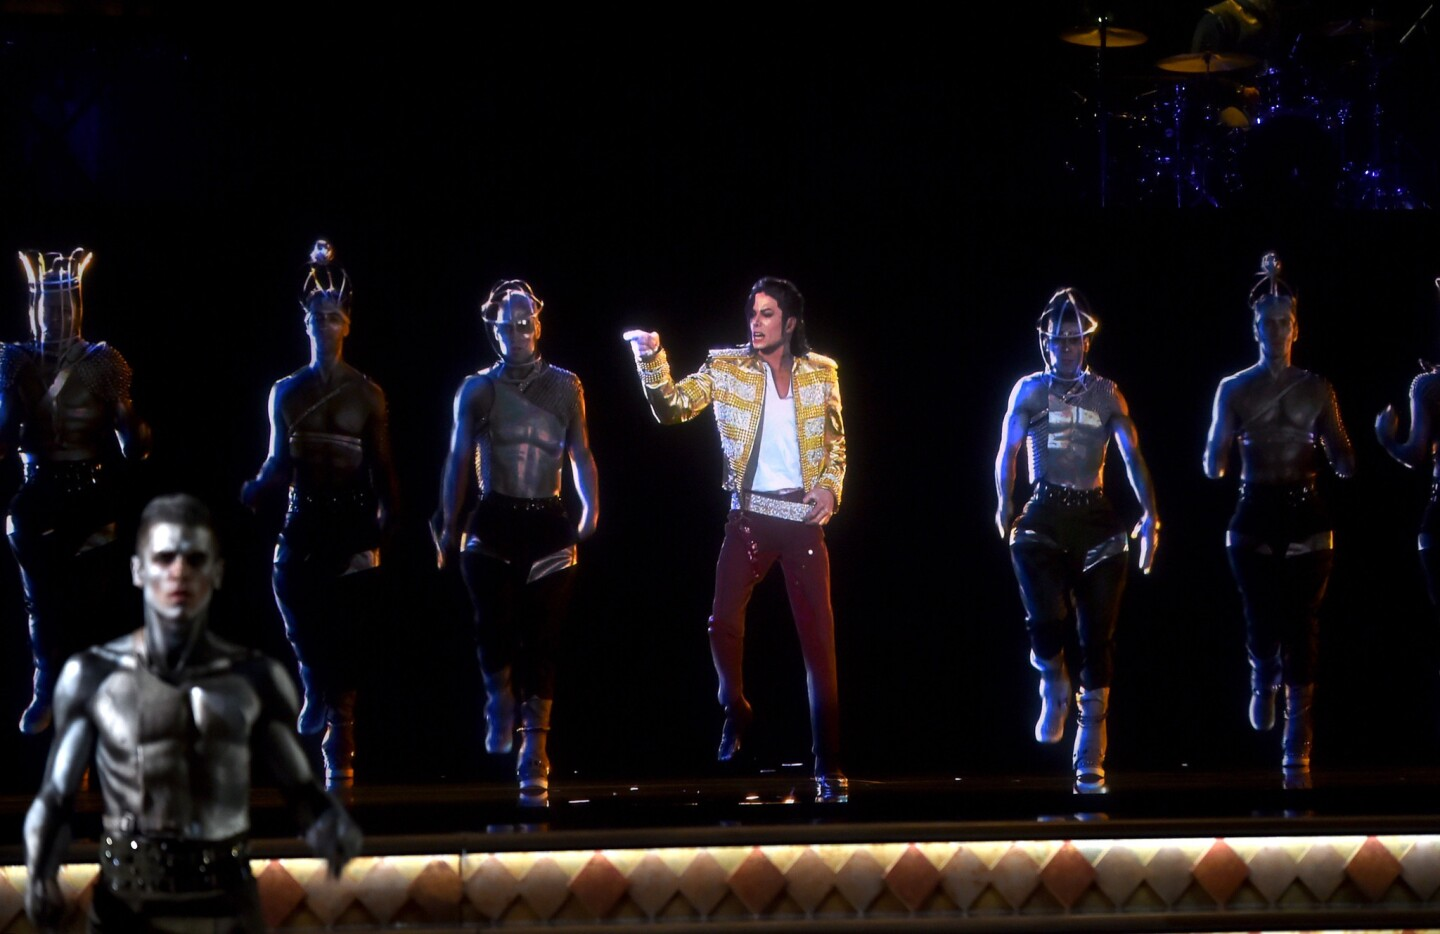 A holographic image of Michael Jackson performs onstage during the 2014 Billboard Music Awards at the MGM Grand Garden Arena in Las Vegas.